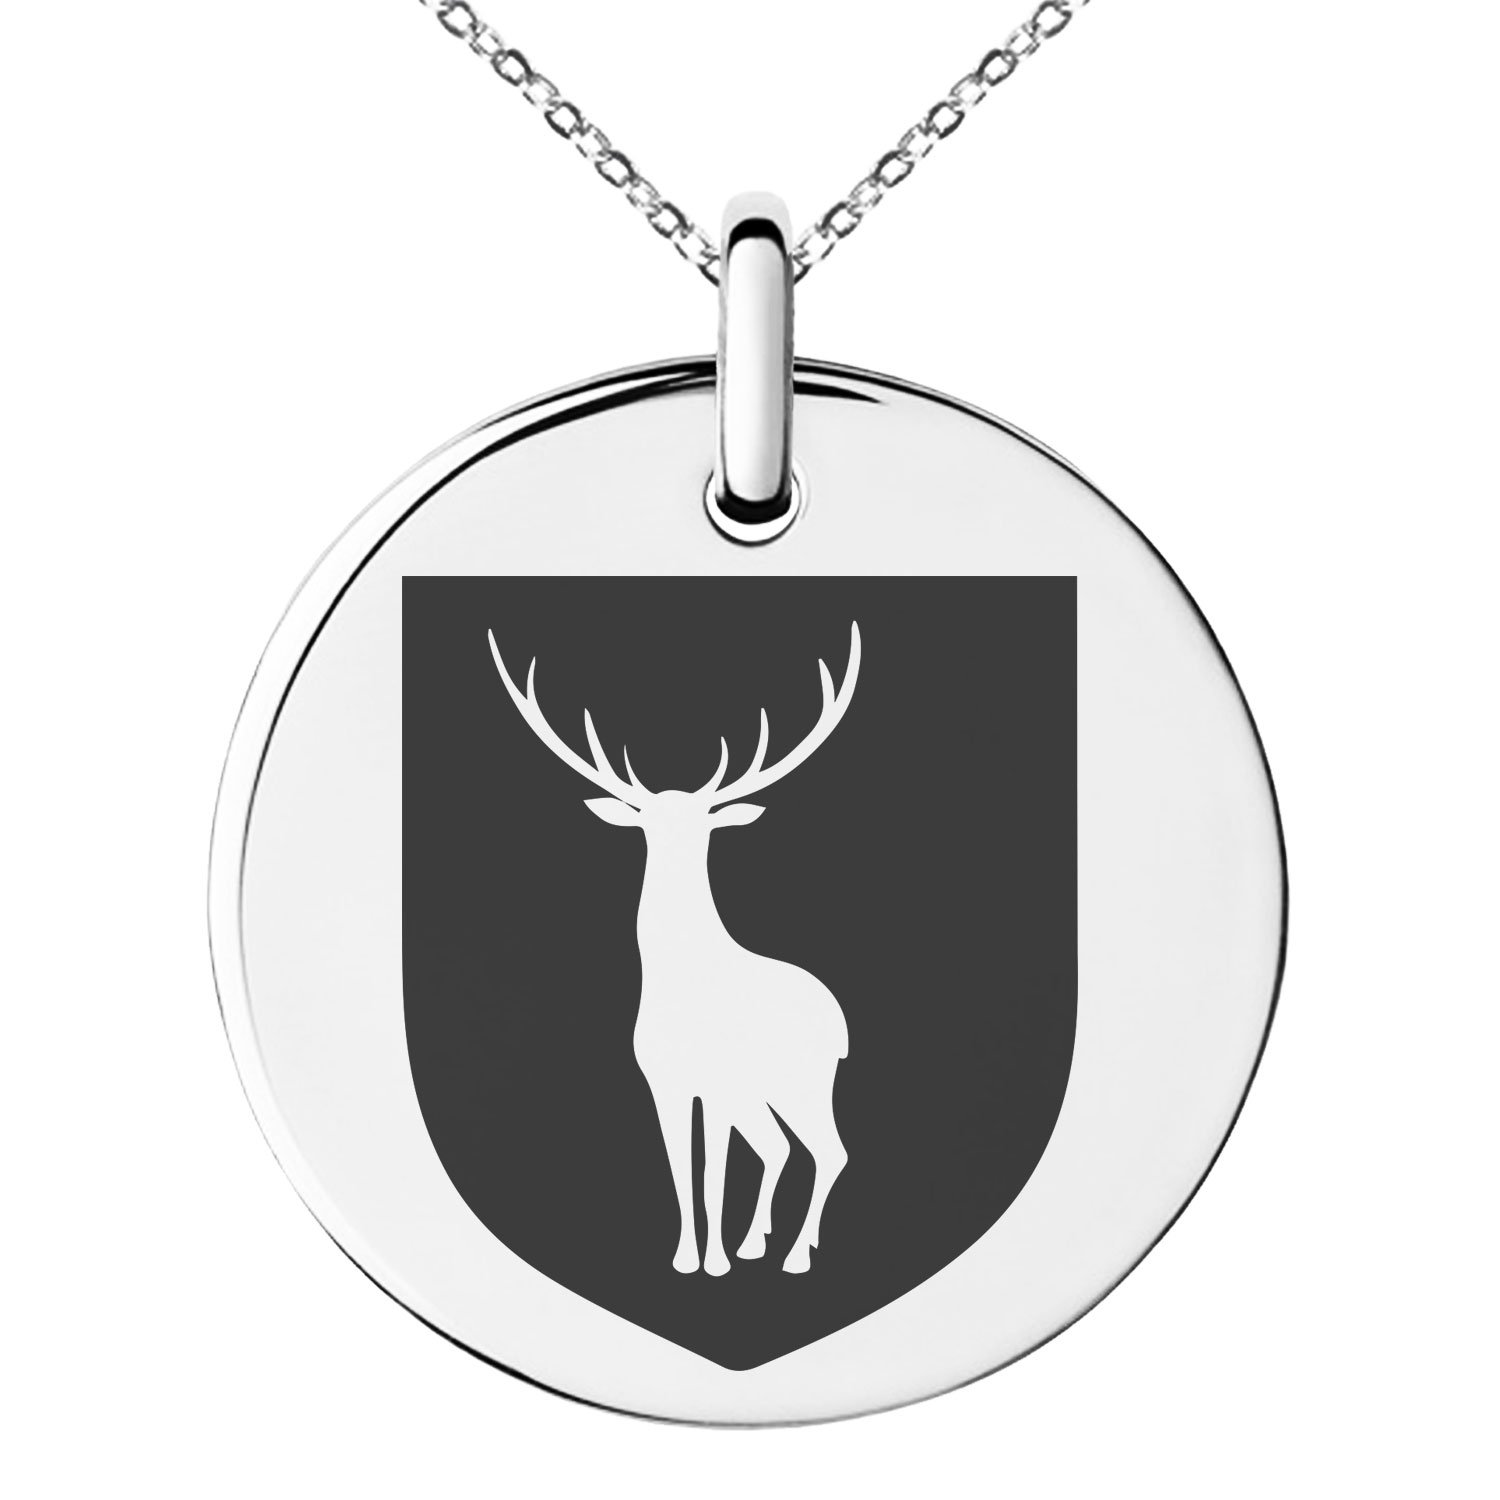 Tioneer Stainless Steel Stag Purity Coat of Arms Shield Symbol Engraved Small Medallion Circle Charm Pendant Necklace